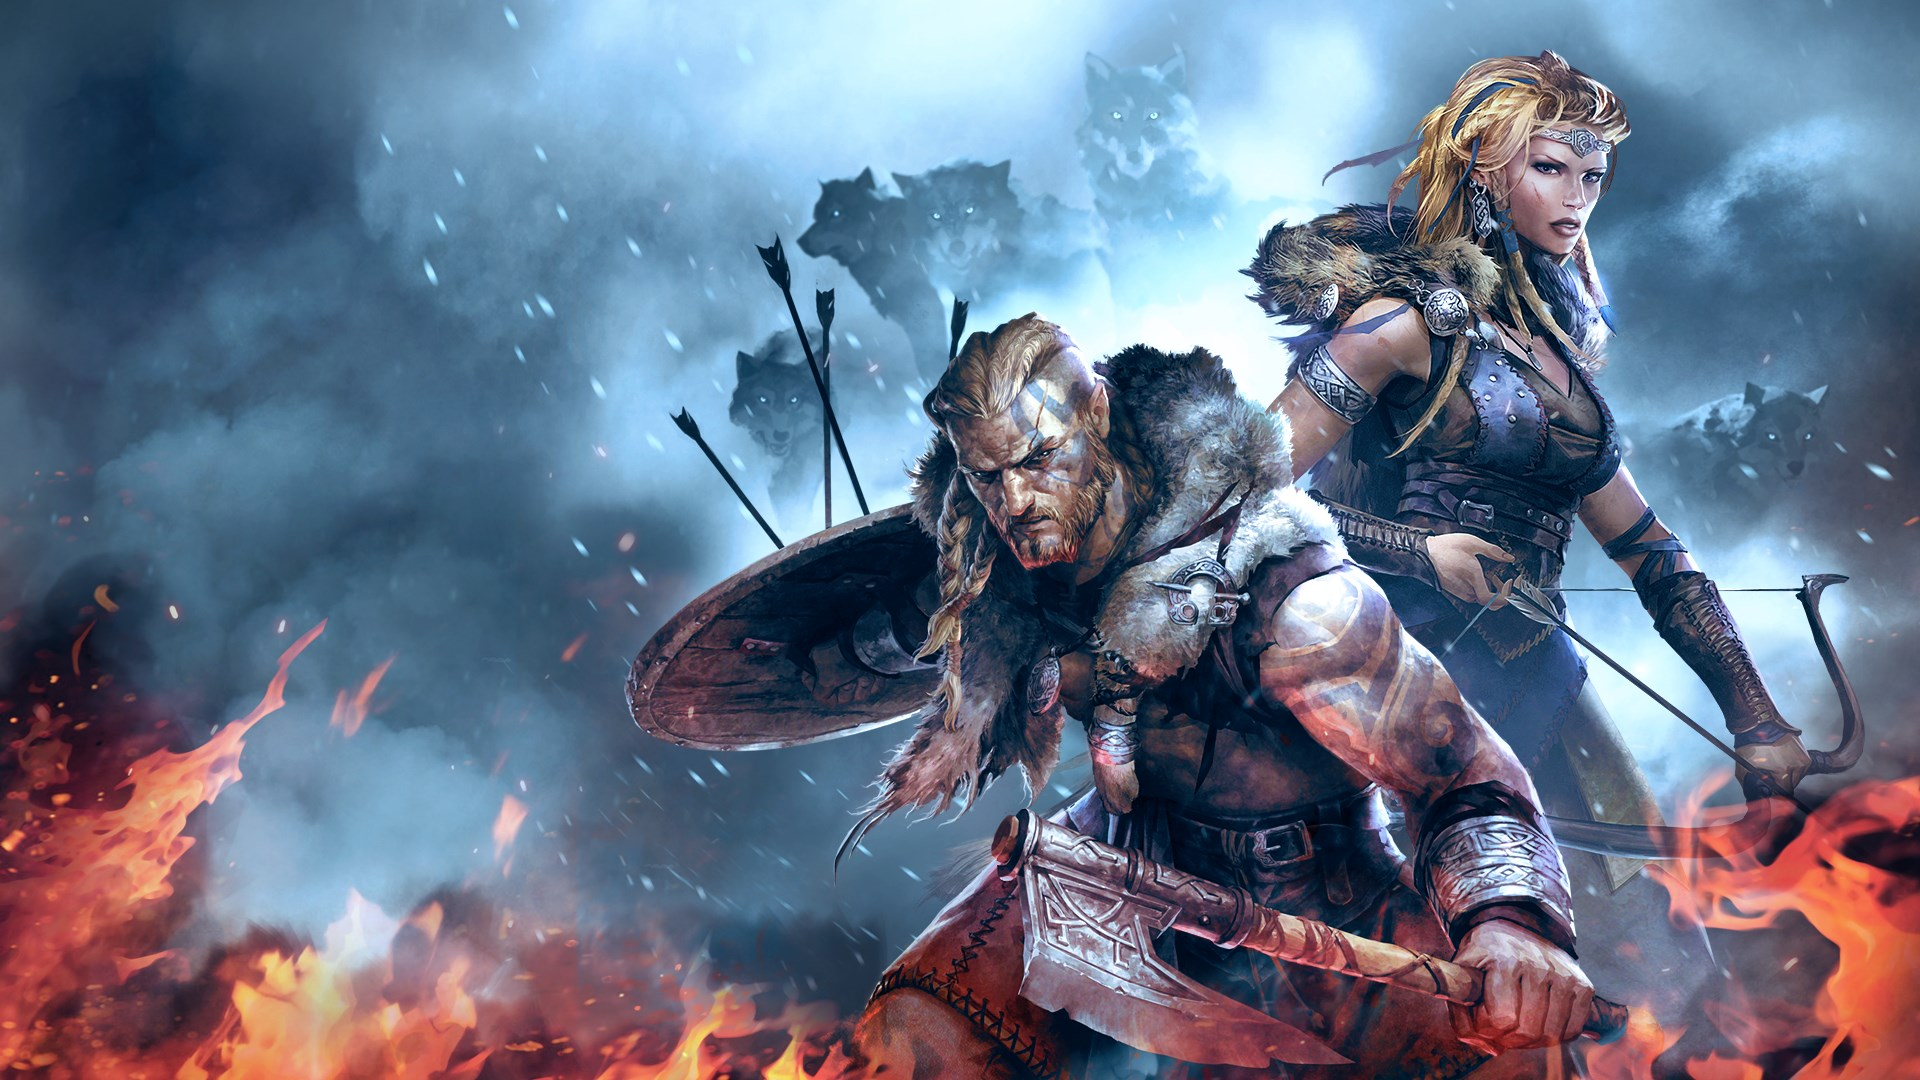 Buy Vikings - Wolves of Midgard - Microsoft Store